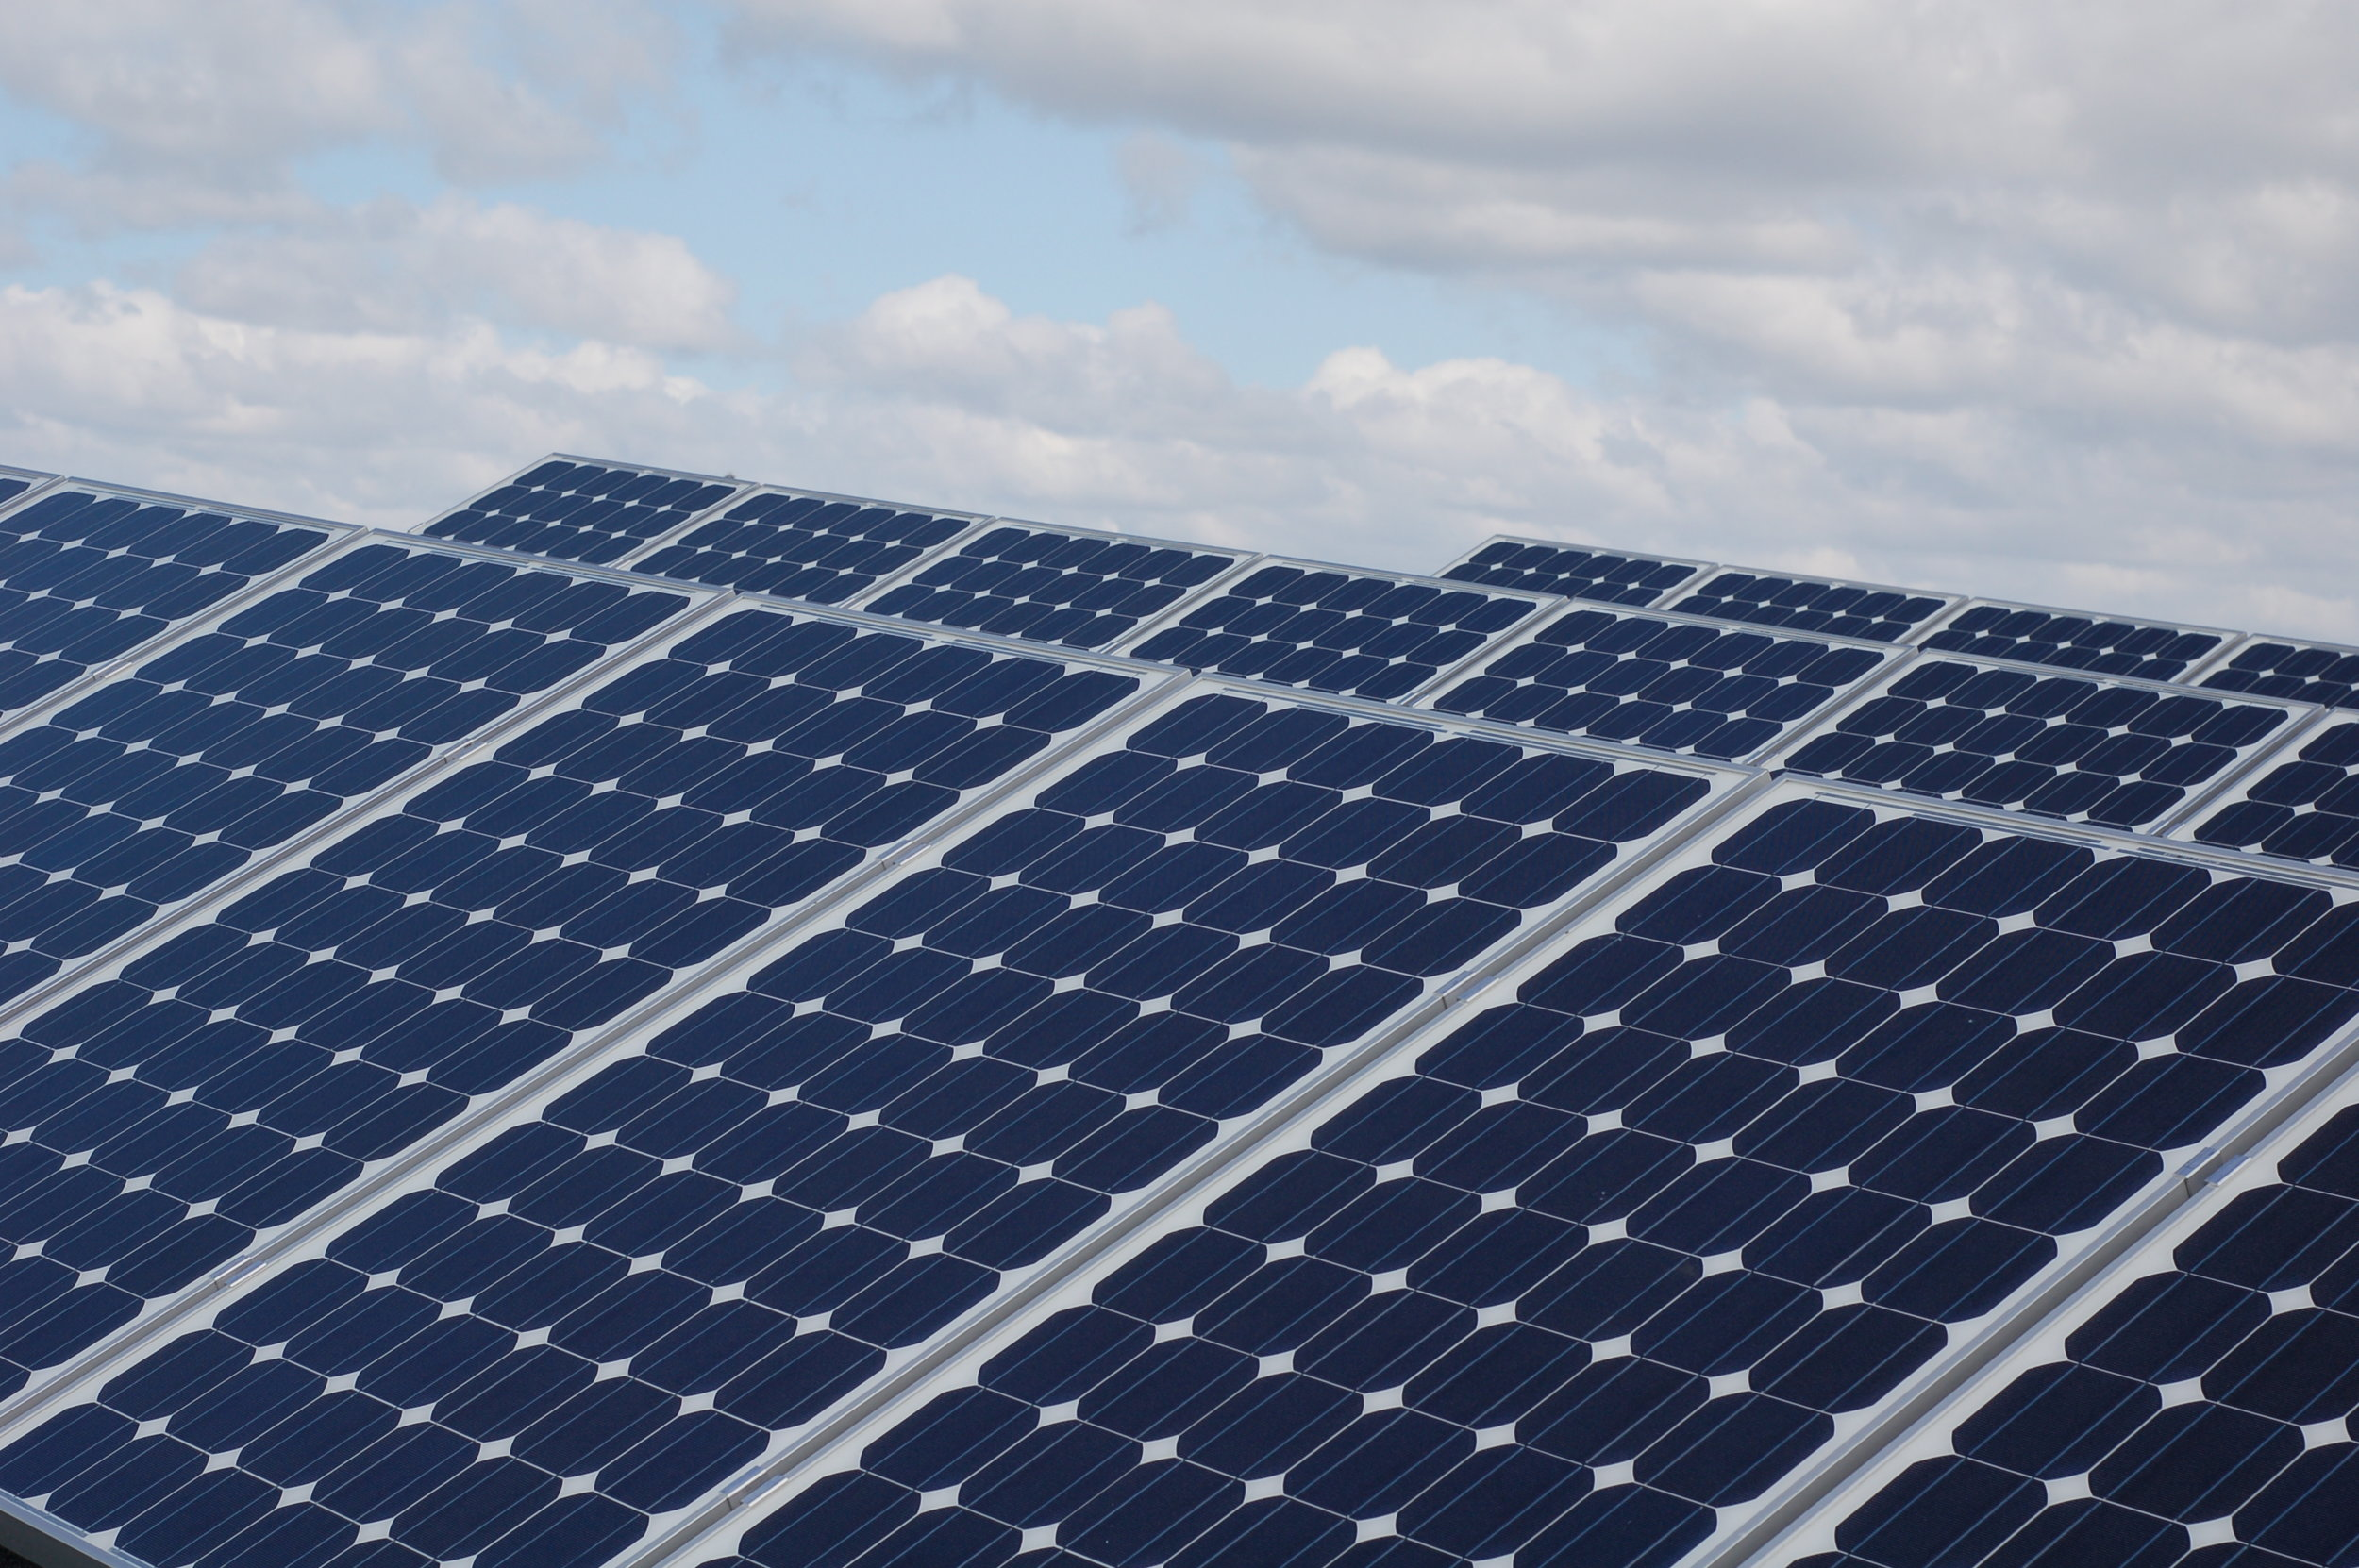 I-1631 will generate investments in clean energy like solar and wind power. Photo © Flickr CC license Lilly, Viktor, Ludvig, Kim & Gitte Andersen_flckrCC